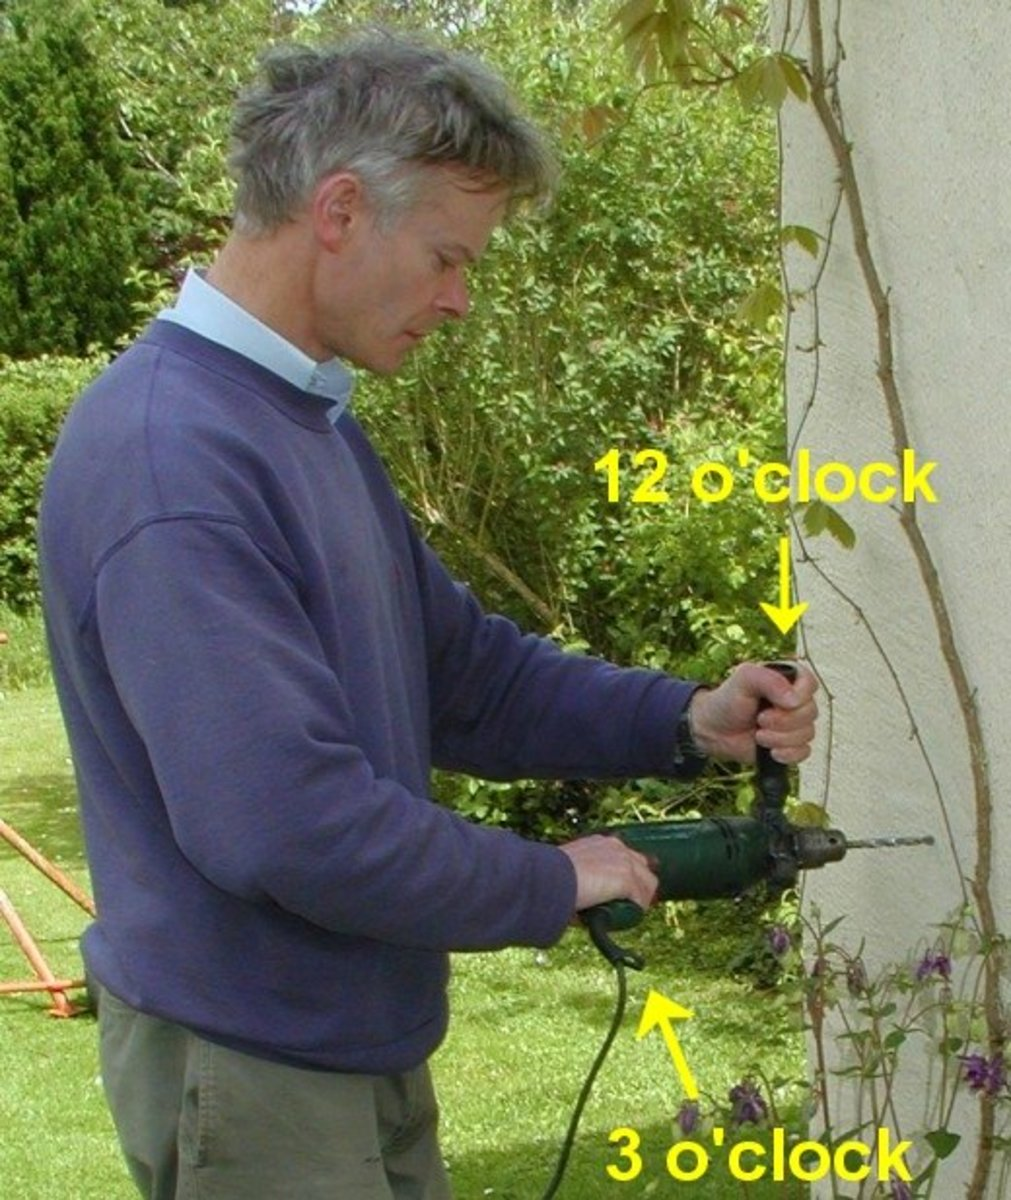 Holding a power drill correctly